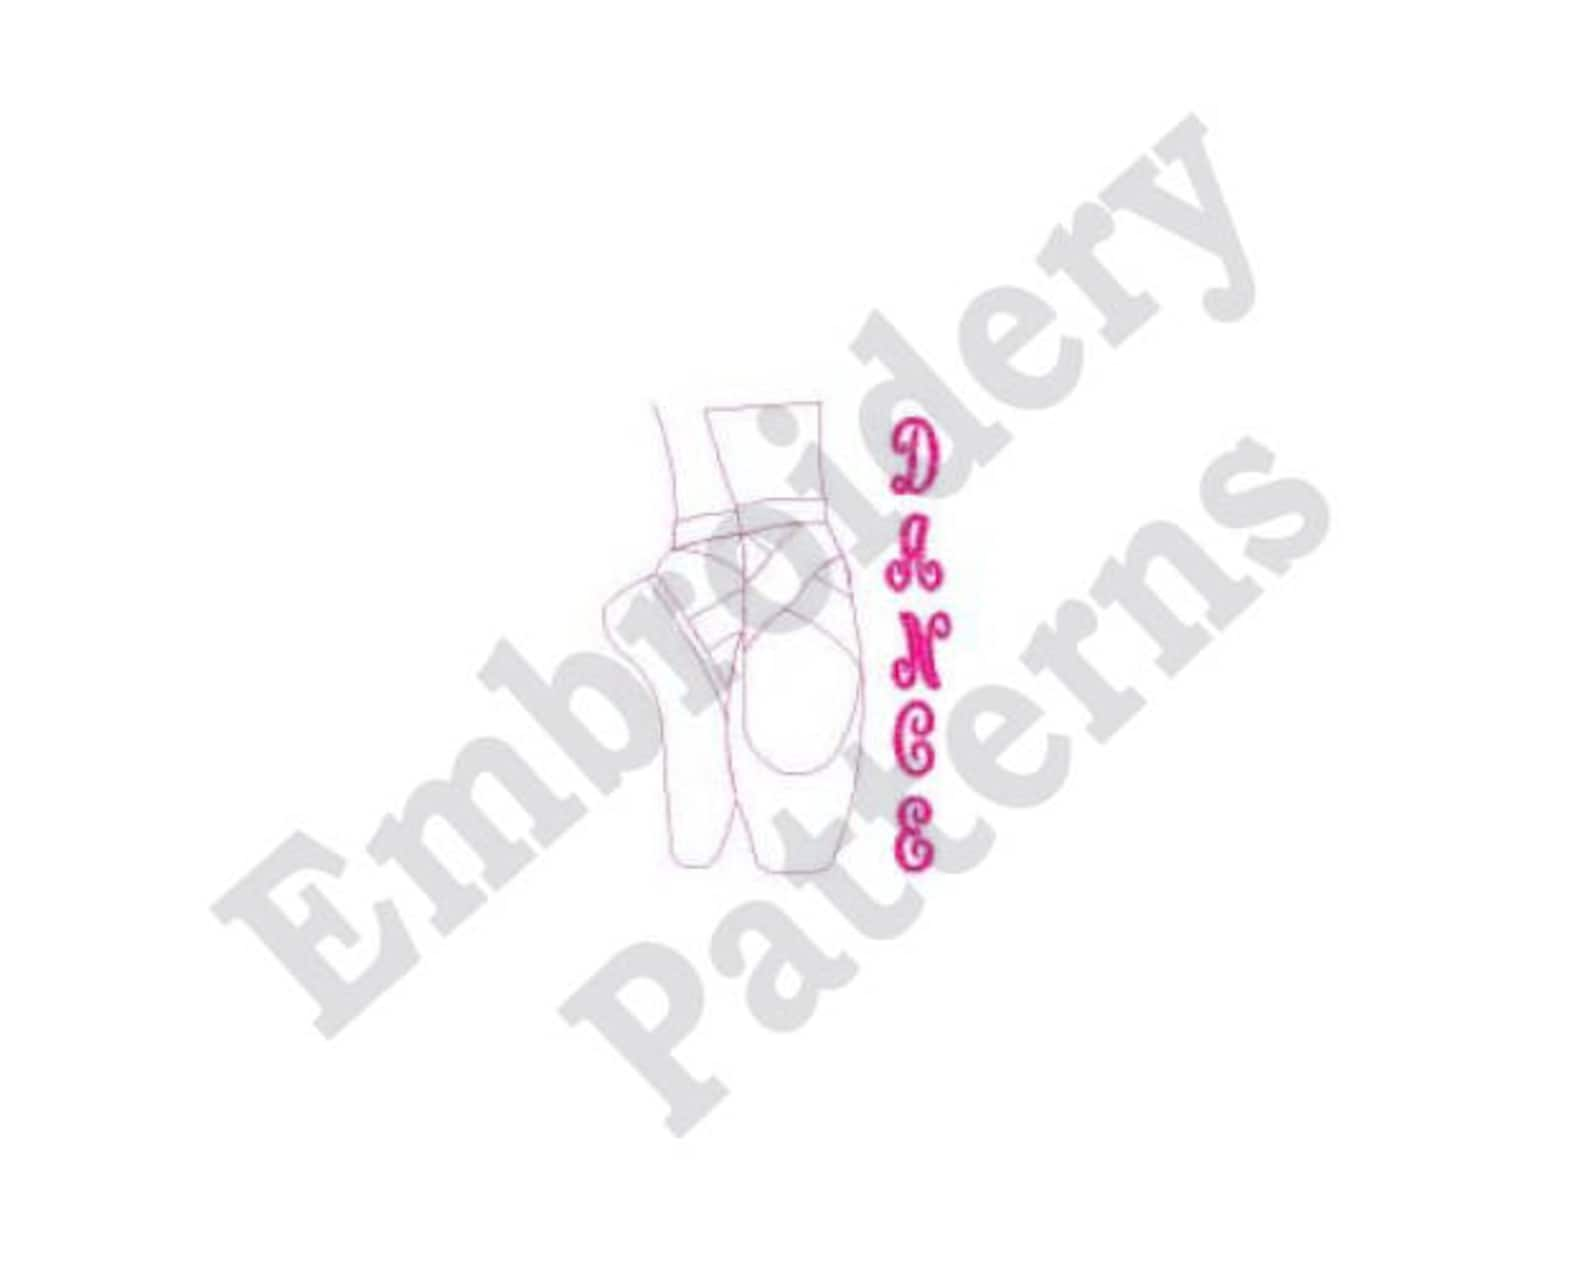 toe shoes outline - machine embroidery design, ballet dancer embroidery